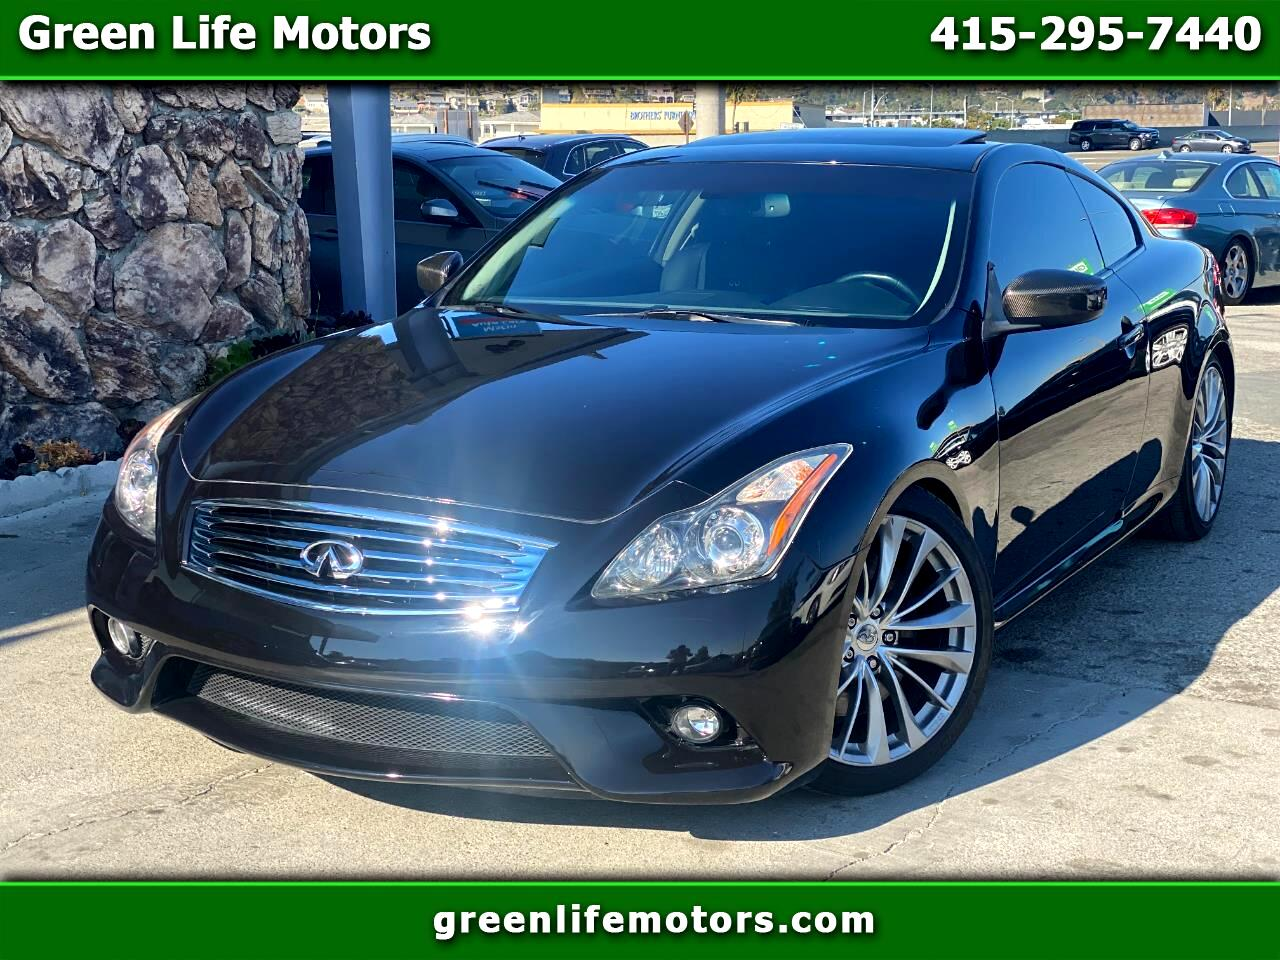 2013 Infiniti G37 Coupe 2dr Sport RWD